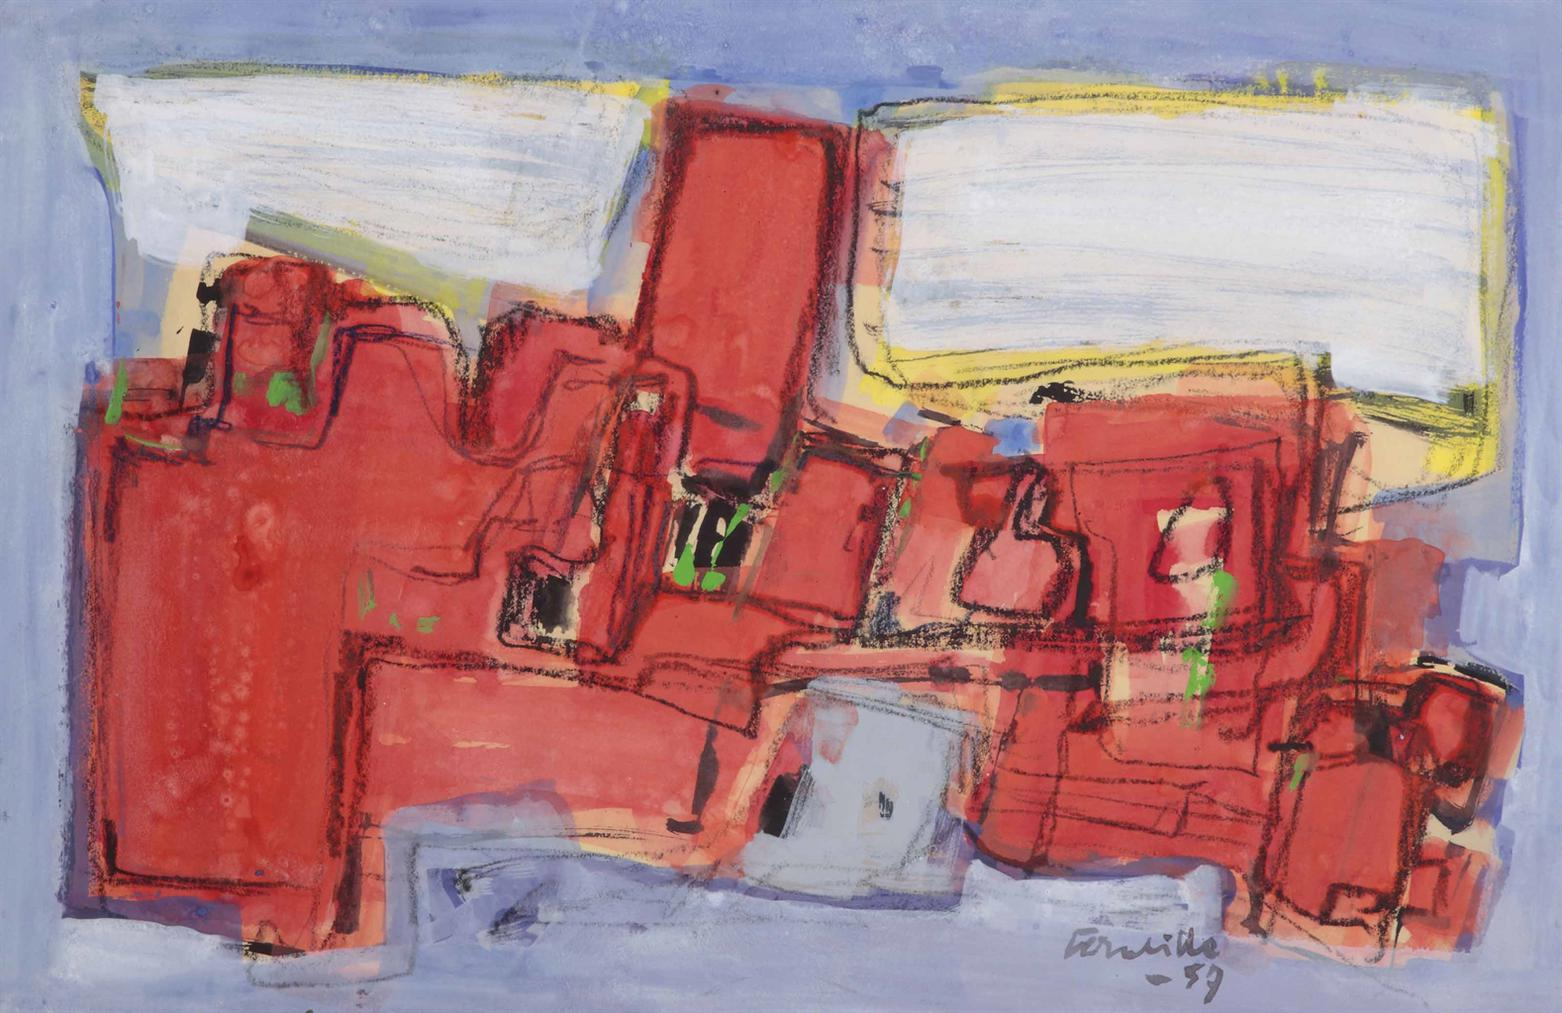 Corneille-Untitled-1957